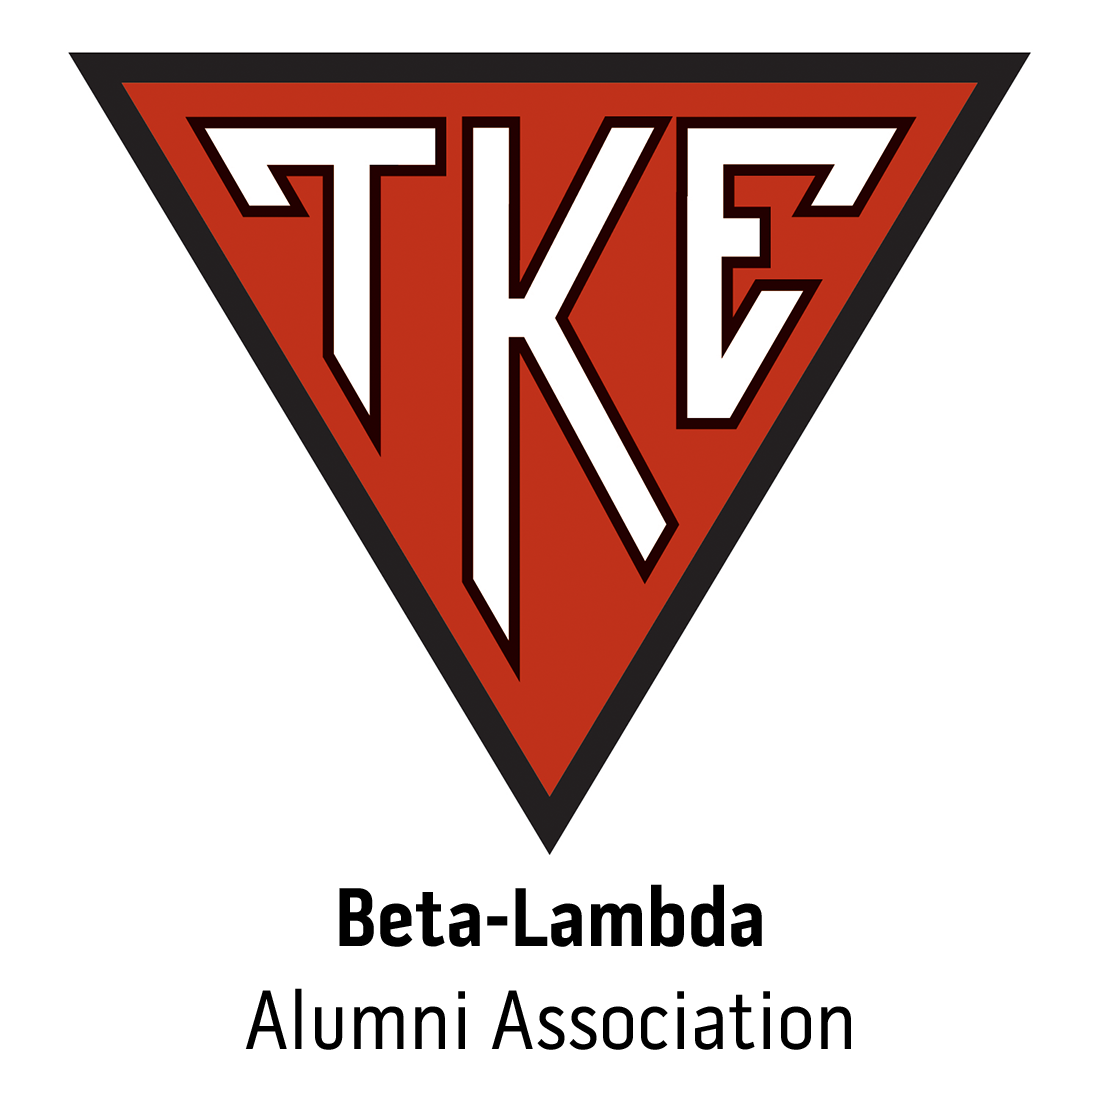 Beta-Lambda Alumni Association at Auburn University